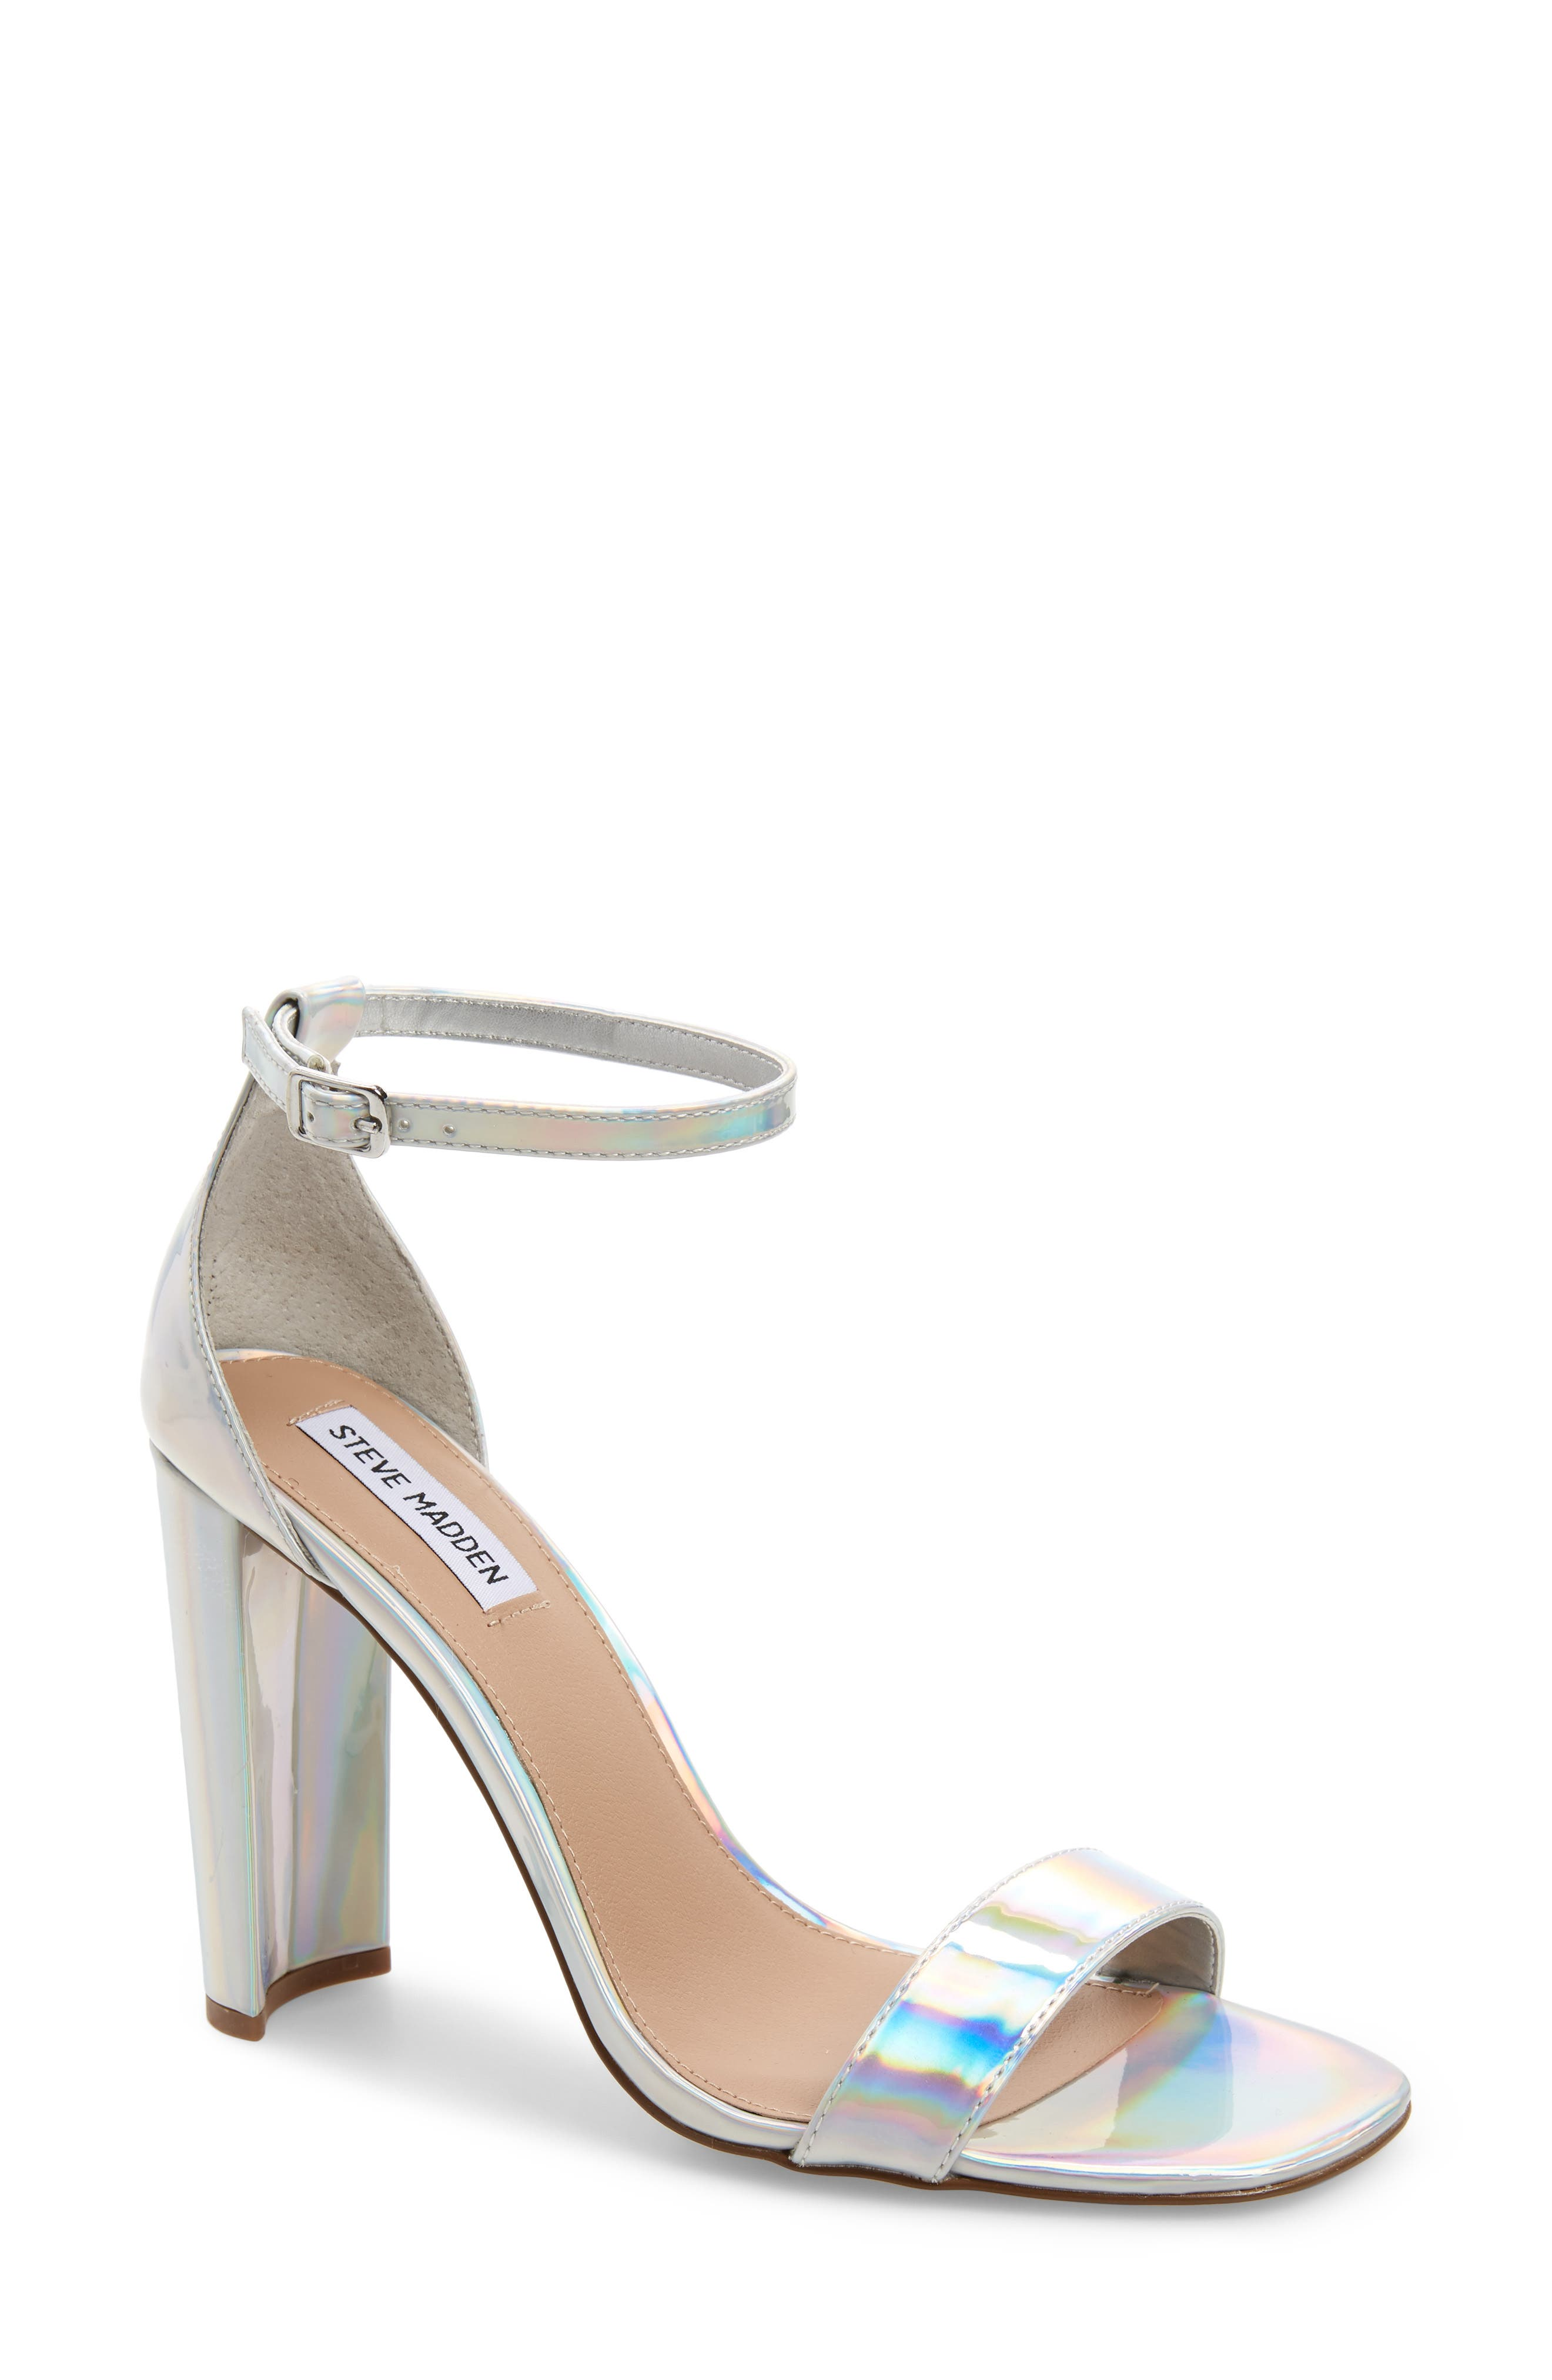 Franky Sandal,                         Main,                         color, IRIDESCENT FAUX LEATHER